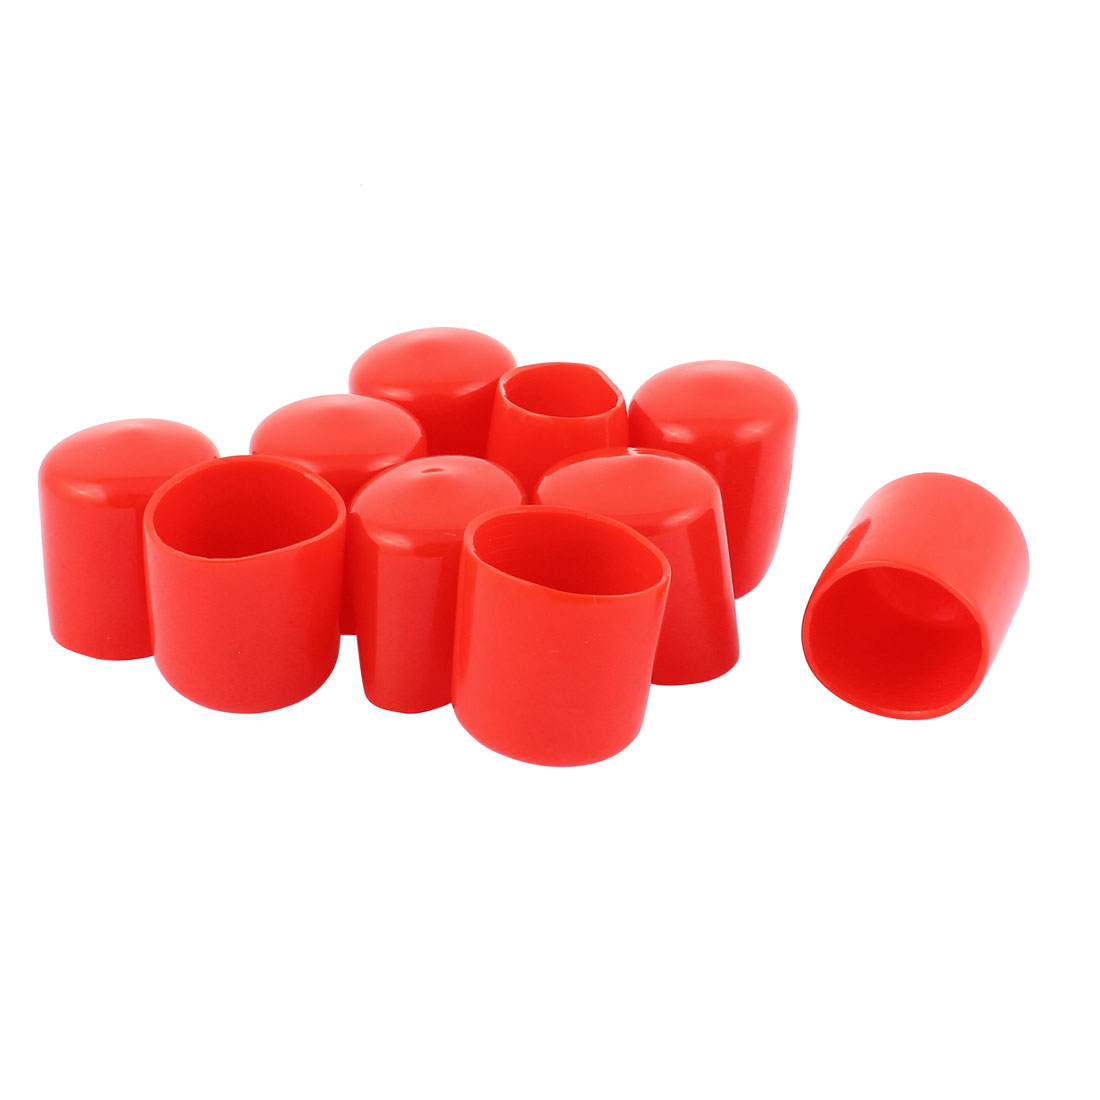 10pcs 25mm Inner Dia Vinyl End Cap Wire Cable Tube Cover Protector